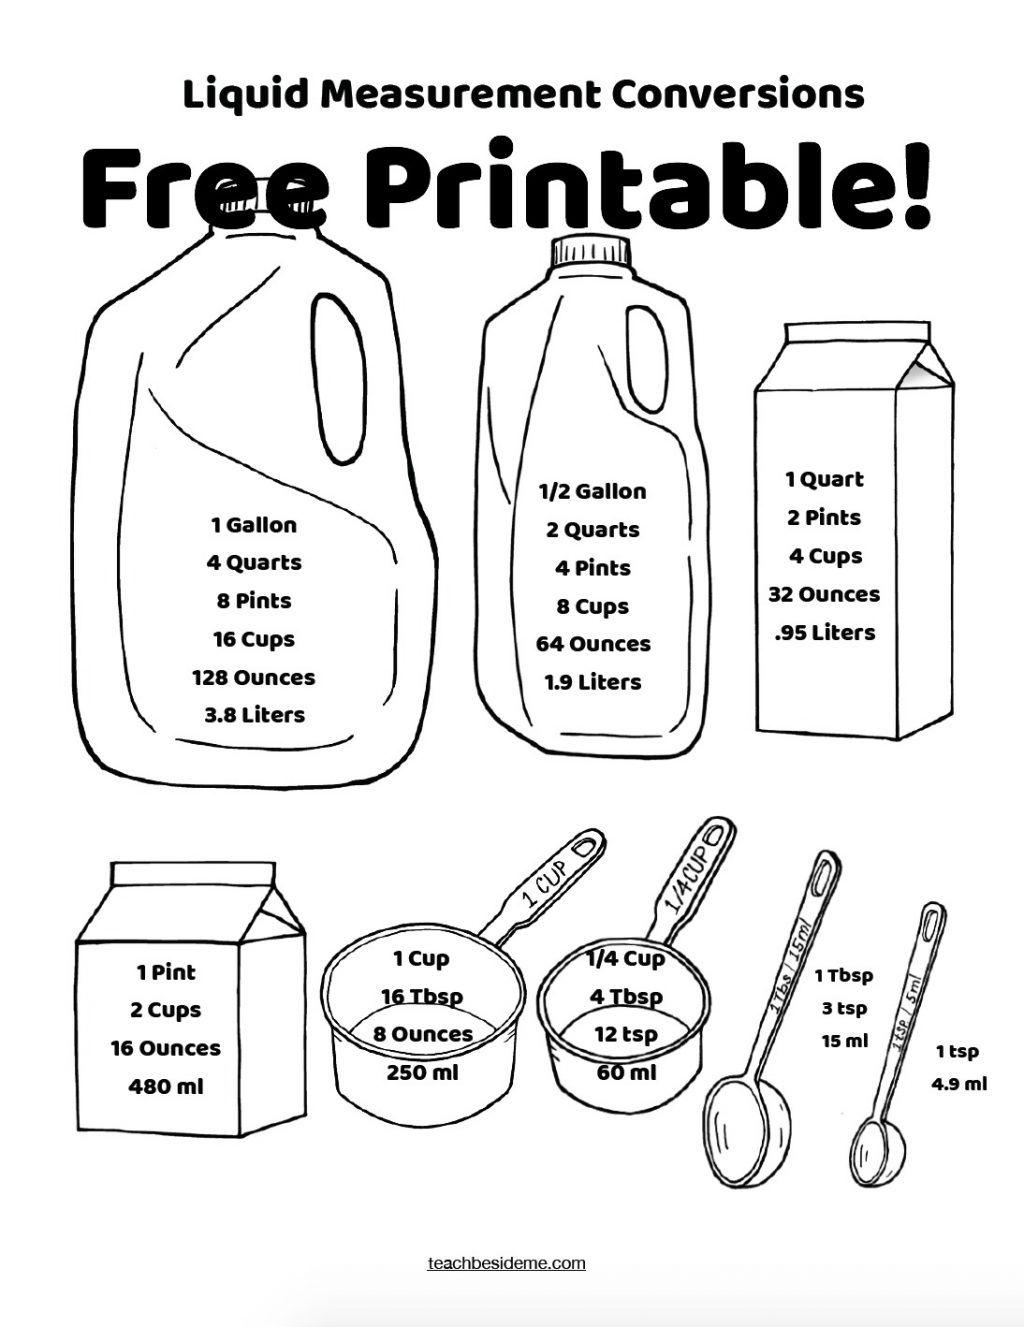 Free Measurement And Conversion Printables And Cheatsheets